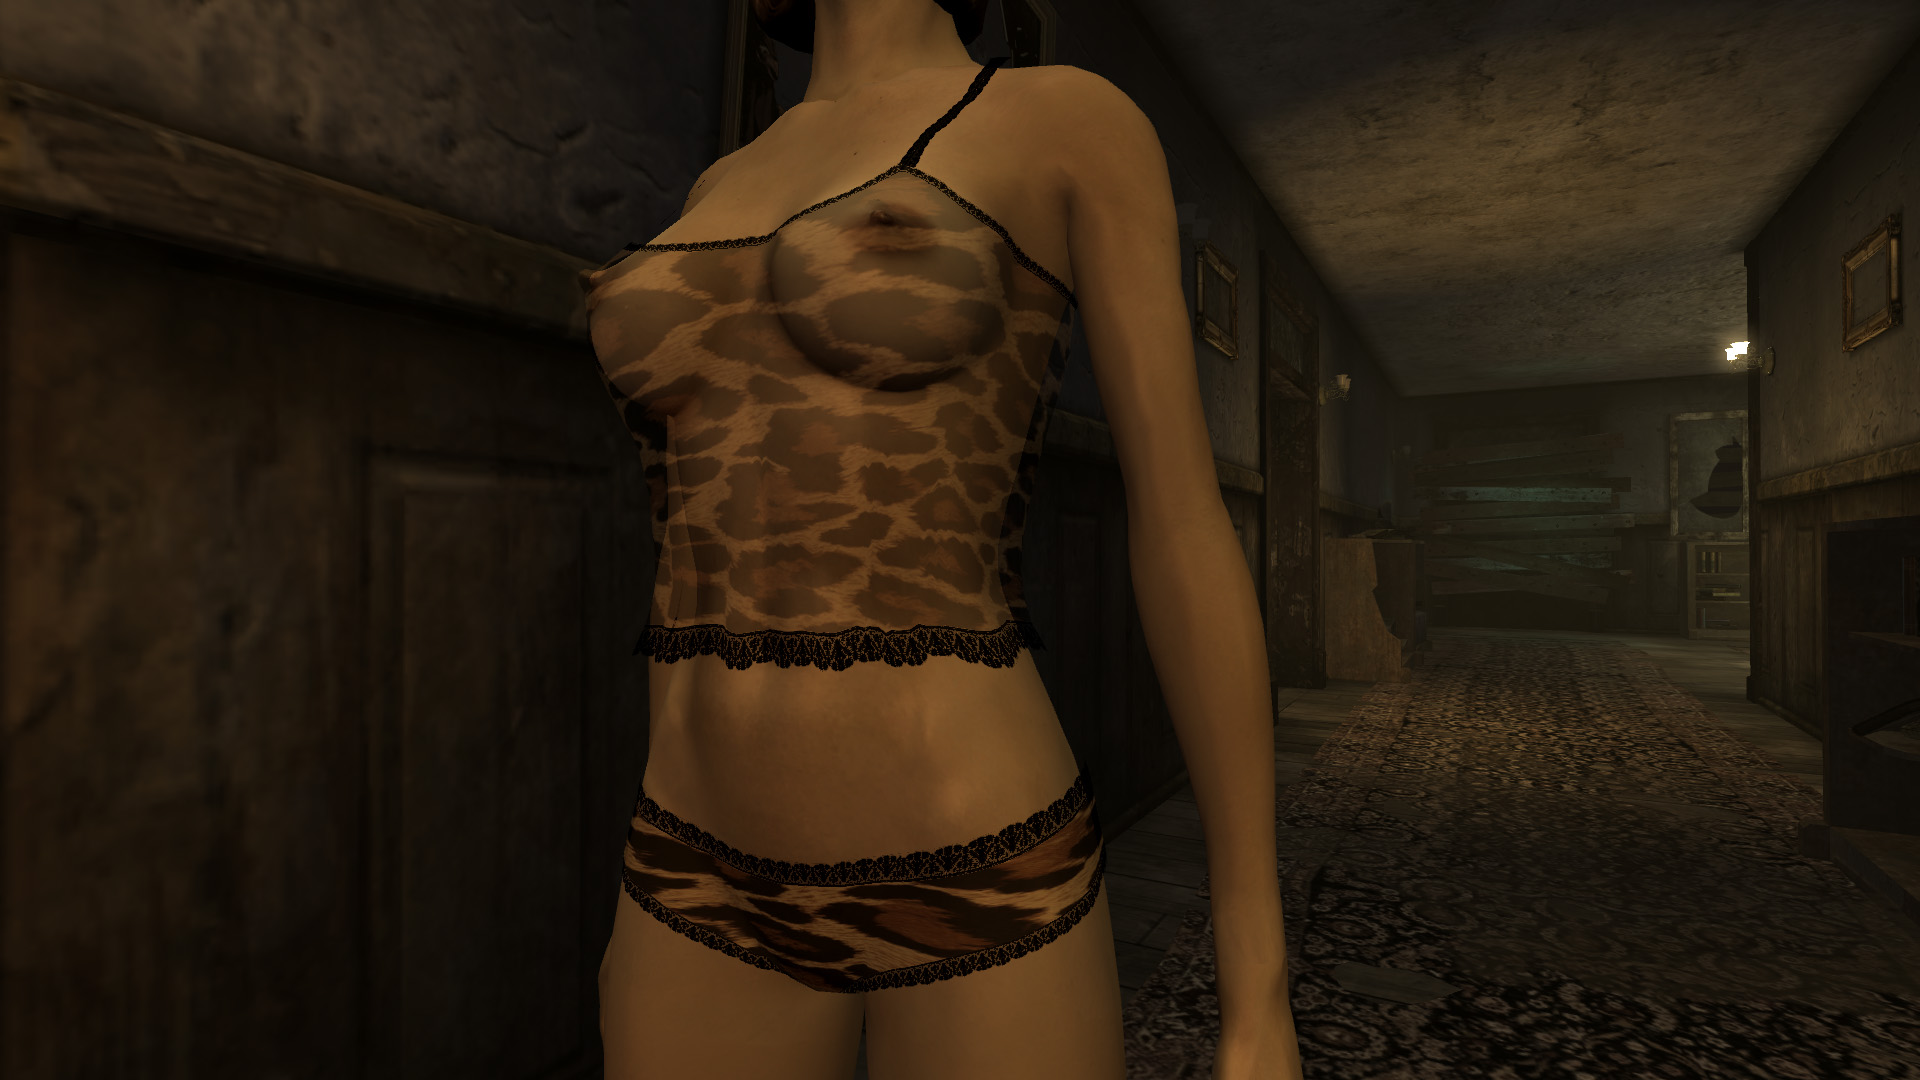 Fallout 3 text mods nud naked download